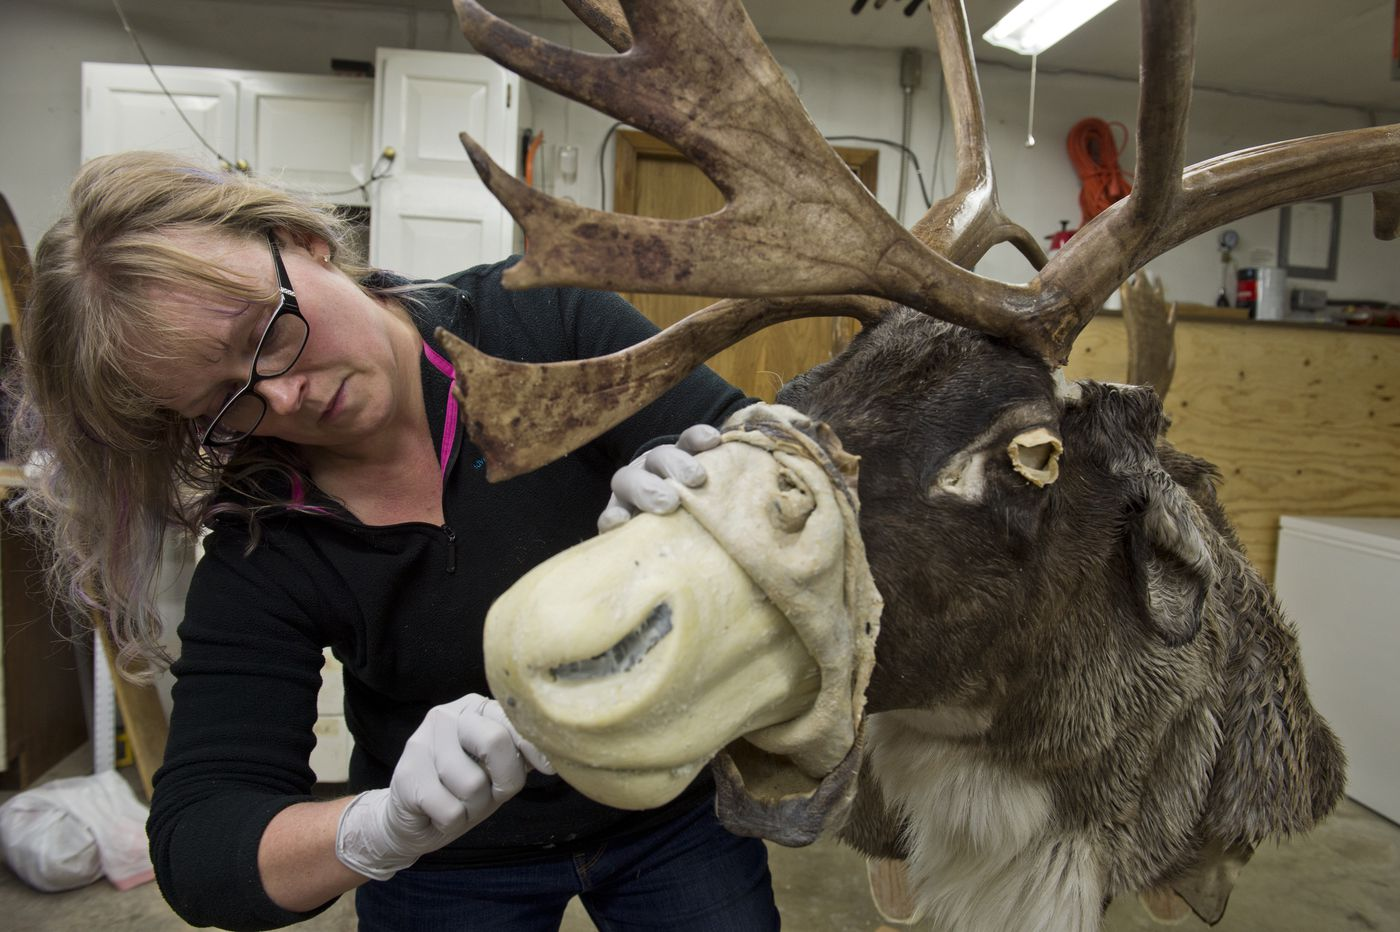 Taxidermist Andrea Radford works on a caribou mount in a shop at her Chugiak Home on November 30, 2017. Radford's business is AK's Adventures in Taxidermy, which she has operated for more than five years. (Marc Lester / ADN)